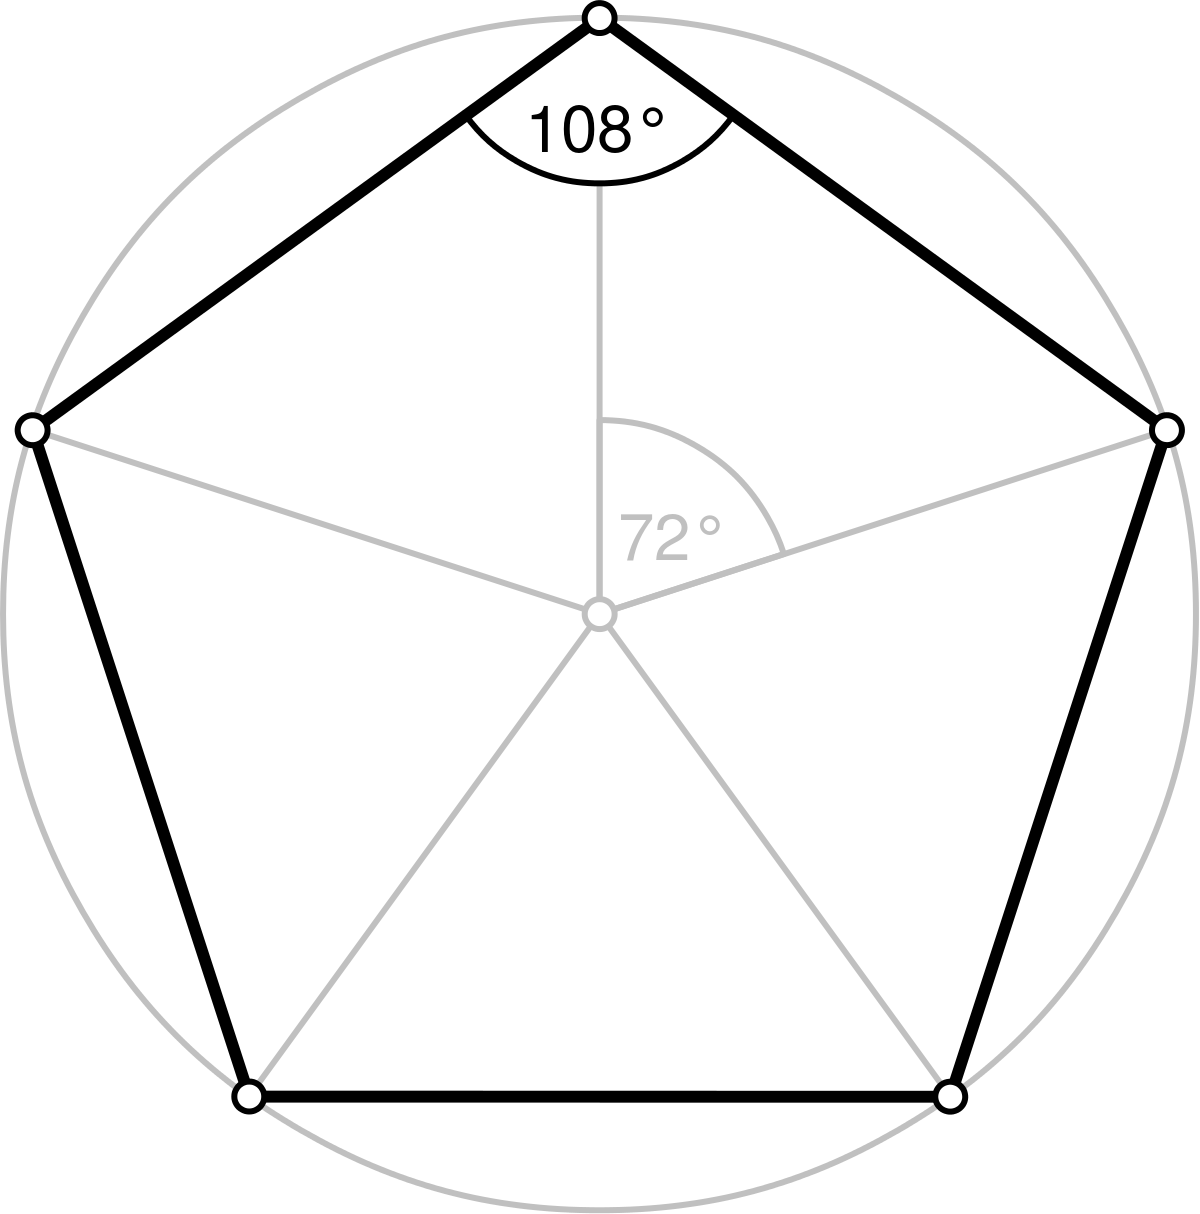 Drawing pentagons. Pentagon wikipedia